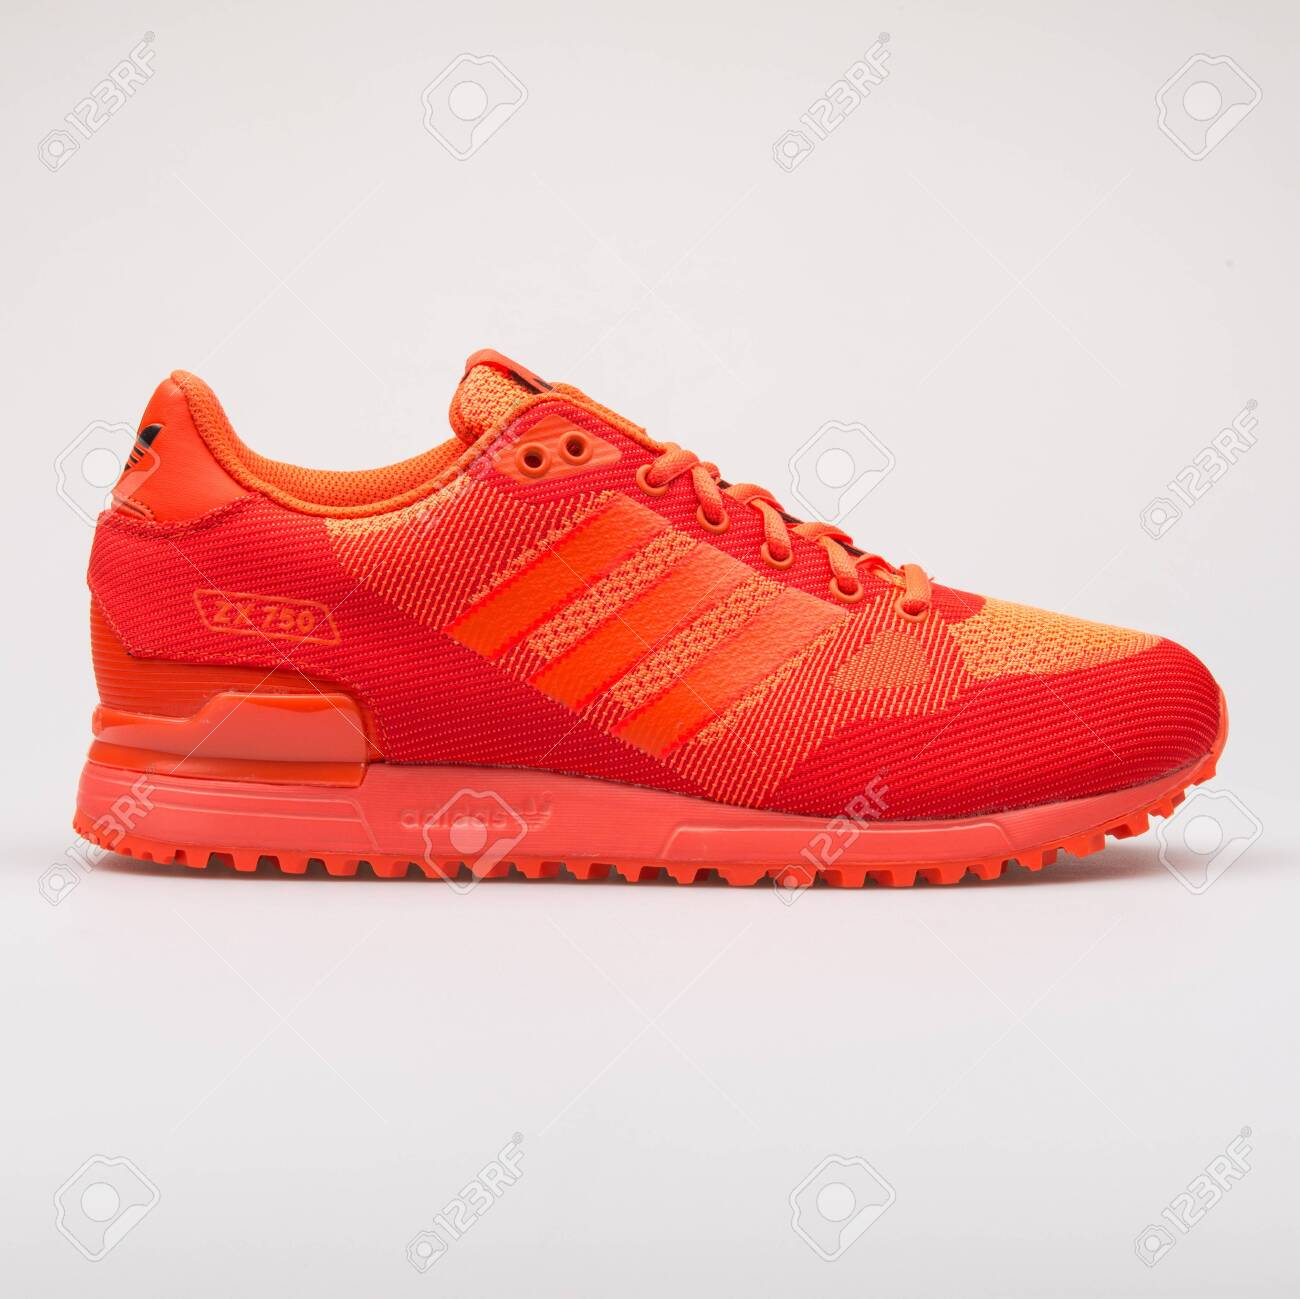 low priced ffac2 51eb1 VIENNA, AUSTRIA - AUGUST 28, 2017: Adidas ZX 750 WV solar red..